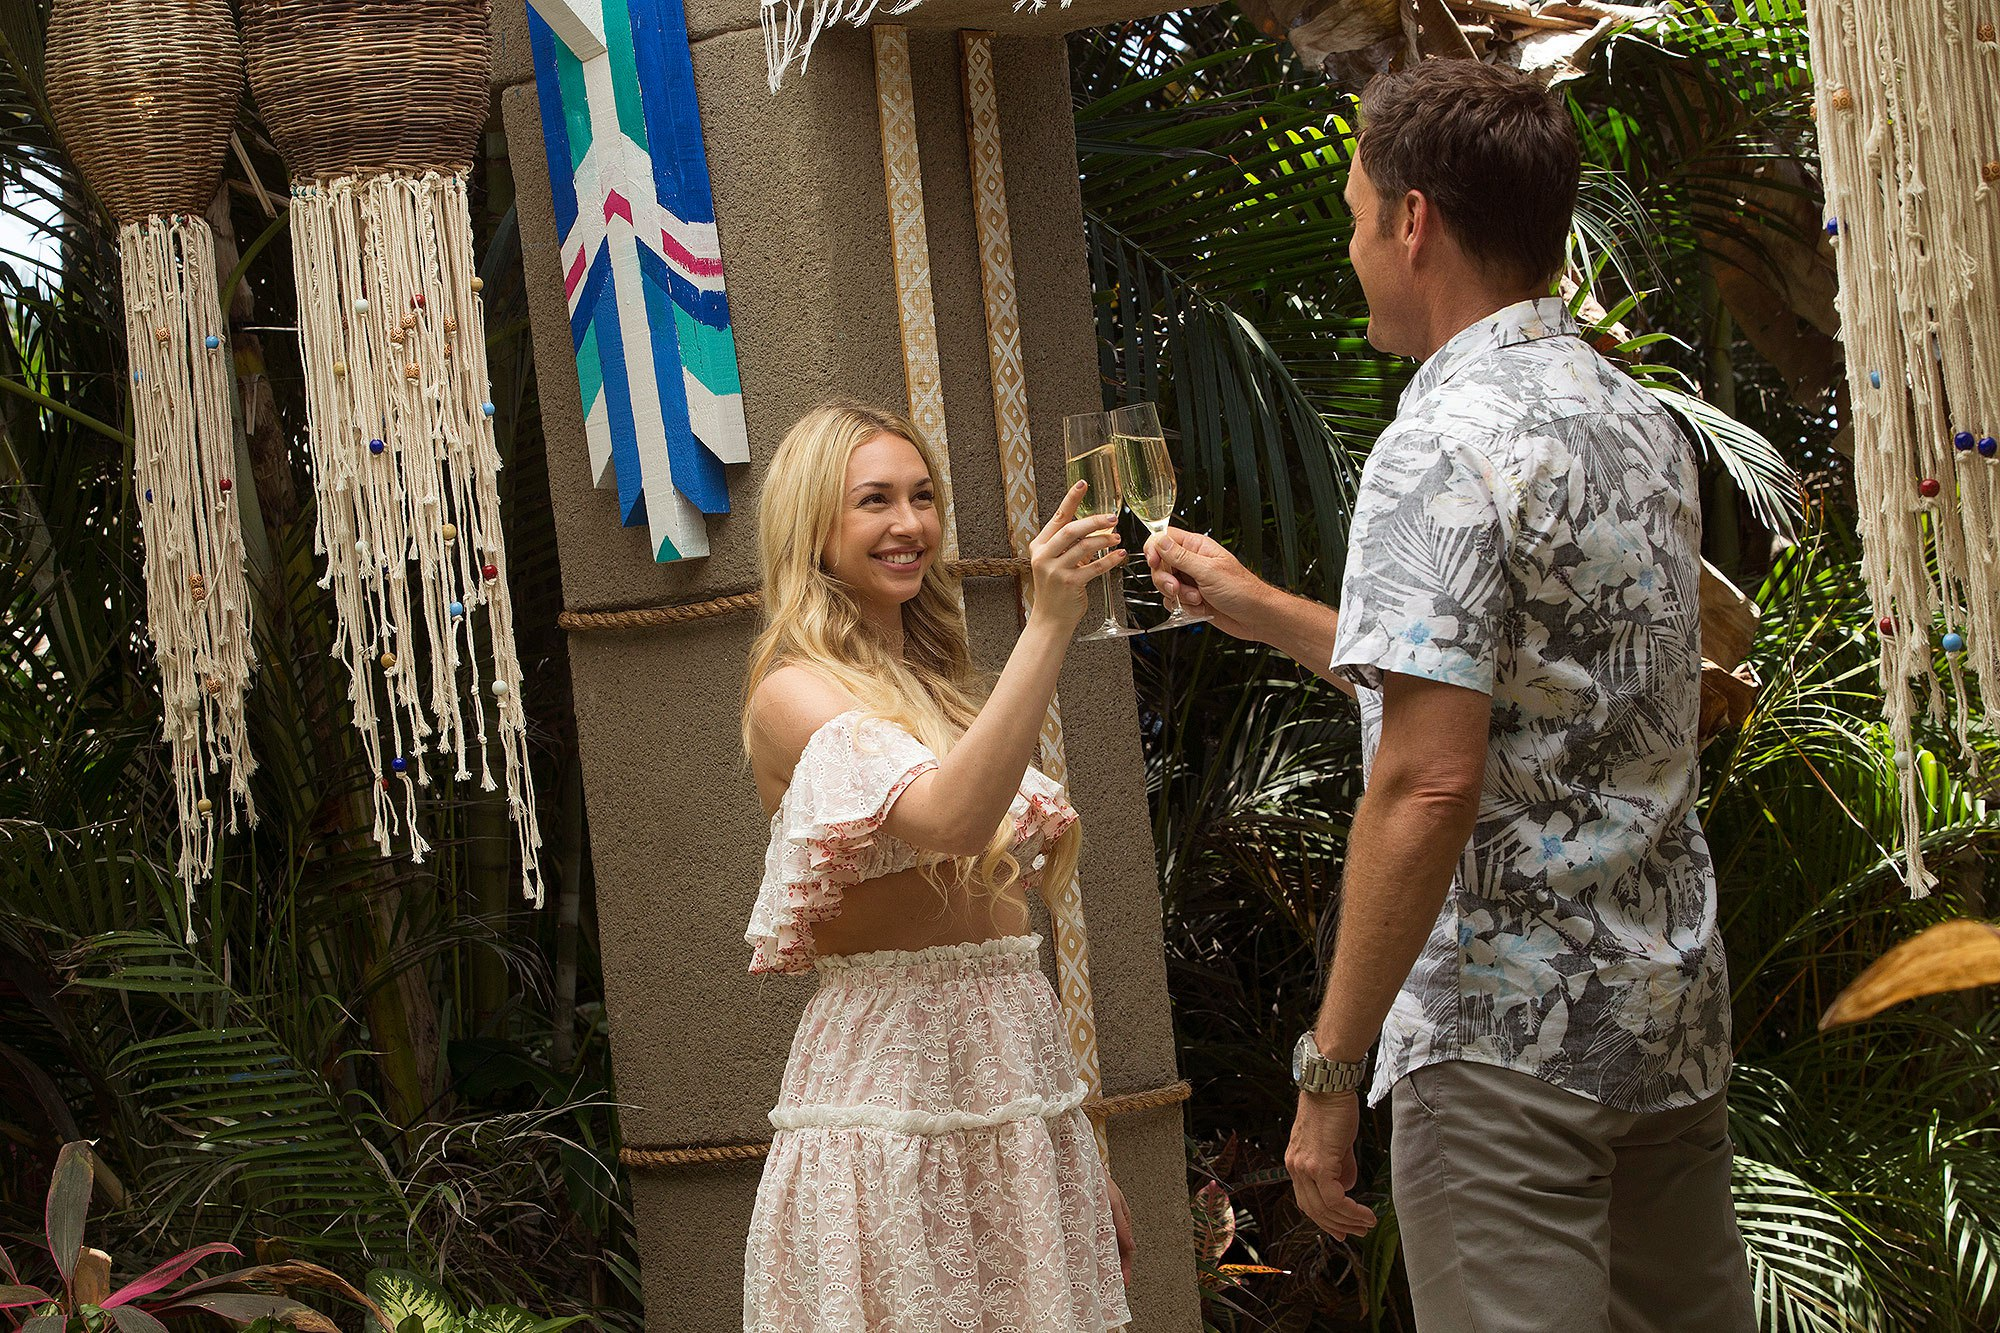 """If you have caught any of the Bachelor¬-related headlines over the past few weeks, you are likely well aware of the drama that overtook the set of Bachelor in Paradise. During the very beginning stages of filming this year's summer spin-off of the love-centric reality show, production was put on hold after allegations of sexual misconduct were made. However, after everything was cleared and the BIP crew got the go-ahead, ABC decided to continue on with season 4 of the hit show, which debuted on Monday (August 14th). Not surprisingly, ABC opted to really play up the whole scandal thing throughout the premiere episode of BIP. Prior to every single commercial break, Chris Harrison teased a particular situation that would shut down production (which we all know happened between contestants Corrine and DiMario). Prior to all the drama unfolding, the show began as it normally does, as the cast of this season made their way in one-by-one. So who [started off] on this season of Bachelor in Paradise? Chris Harrison helped welcome in: Raven Gates, Robby Hayes, Taylor Nolan, Derek Peth, Amanda Stanton, Ben Zorn, Alexis Waters, Alex Woytkiw, Lacey Mark, Nick Benvenutti, Corrine Olympios, Vinny Ventiera, Jasmine Goode, Kristina Schulman, Danielle Maltby, and DeMario Jackson. While most of the arrivals to Paradise came welcomed by all, there was one contestant this season that made waves right away (not in a good way). Chatting amongst each other, the initial few cast mates speculated about who they thought would be showing up next. Subsequently, this prompted several of the contestants – predominantly the women – to admit that they hoped DeMario (from Rachel's season) wouldn't show up. Inevitably, this is precisely when DeMario waltzed in, as he annoyingly continued to blow a whistle and beg his fellow contestants for a """"new beginning."""" As you may or may not know, DeMario was at the center of controversy while he was a contestant on Rachel's season of The Bachelorette, as it was"""